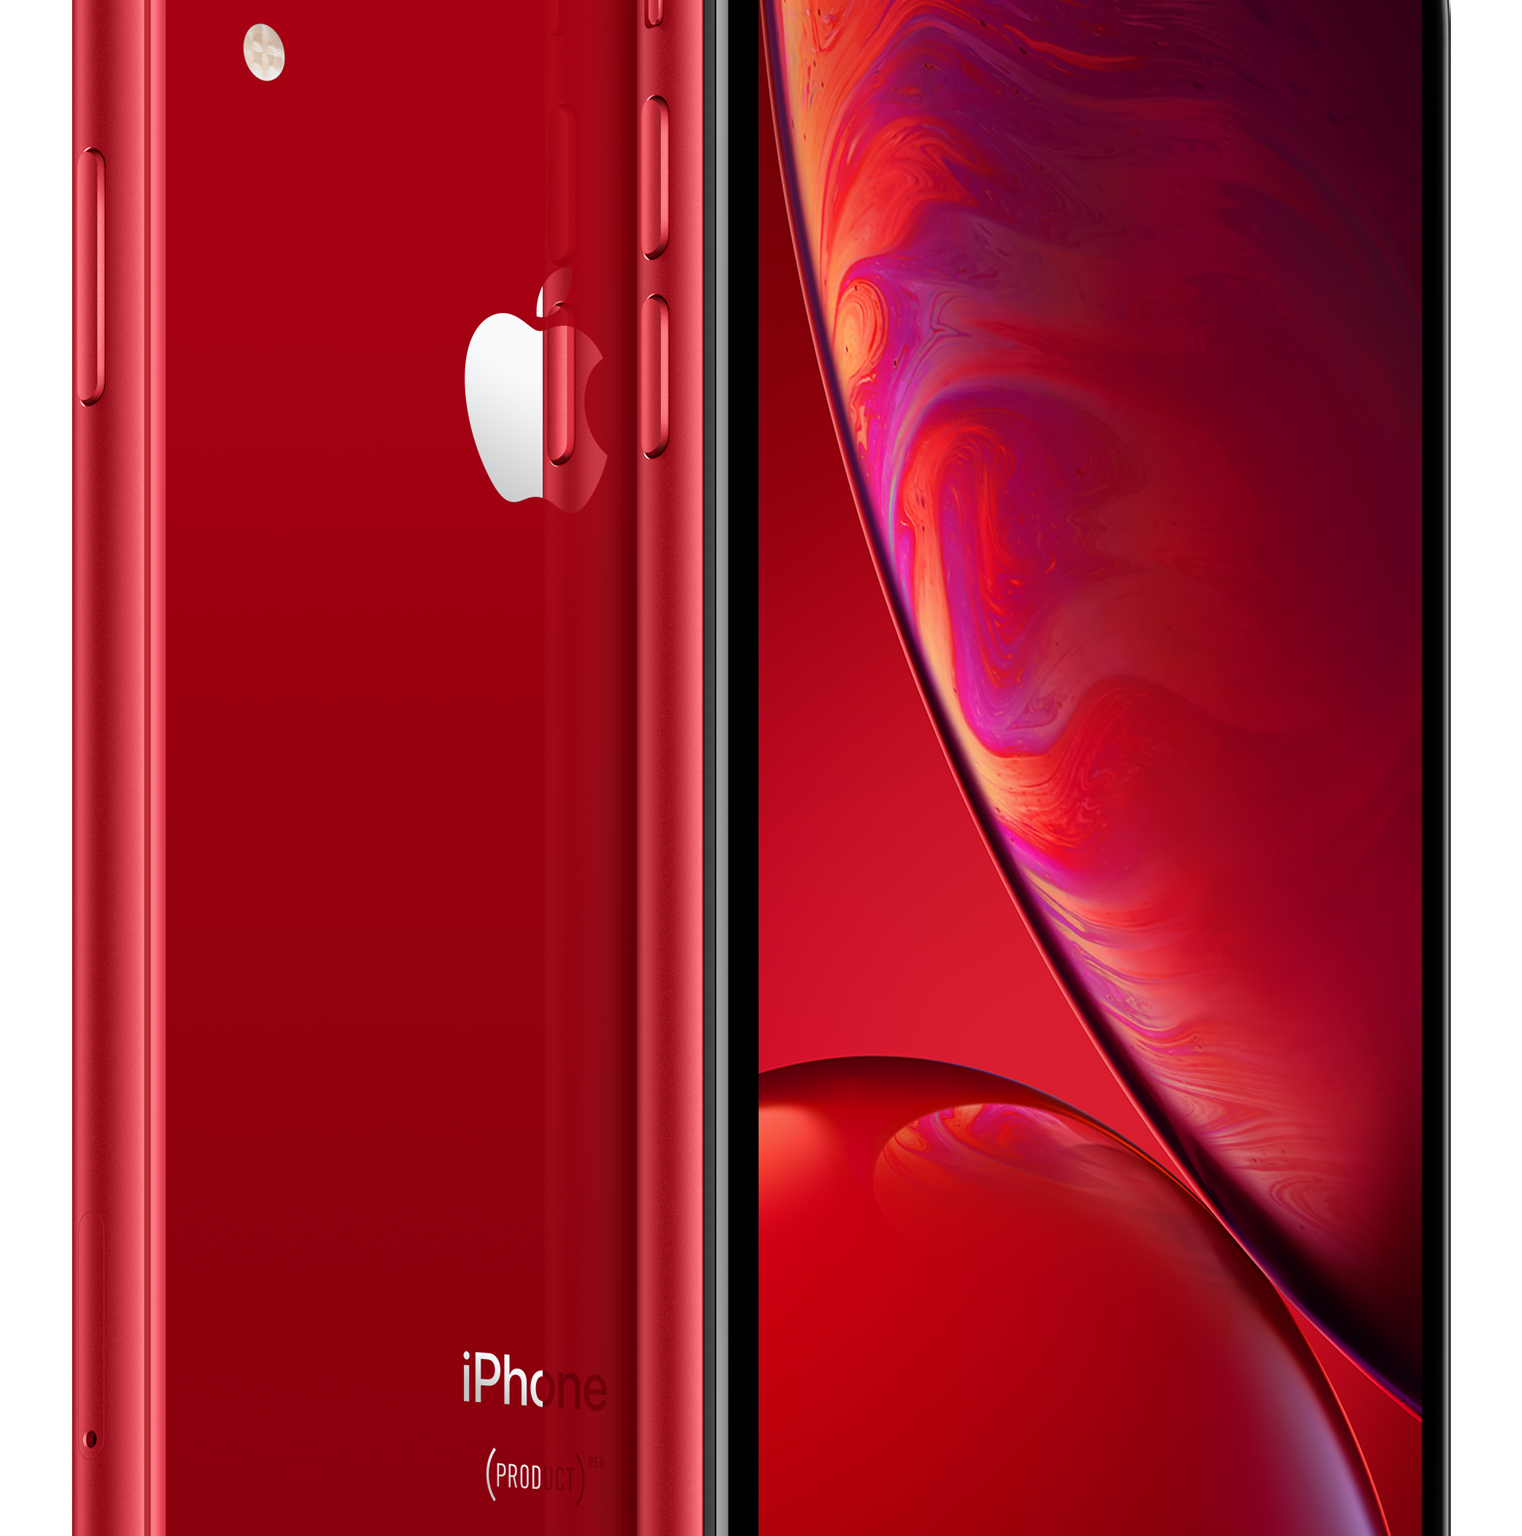 The ProductRED iPhone XR.